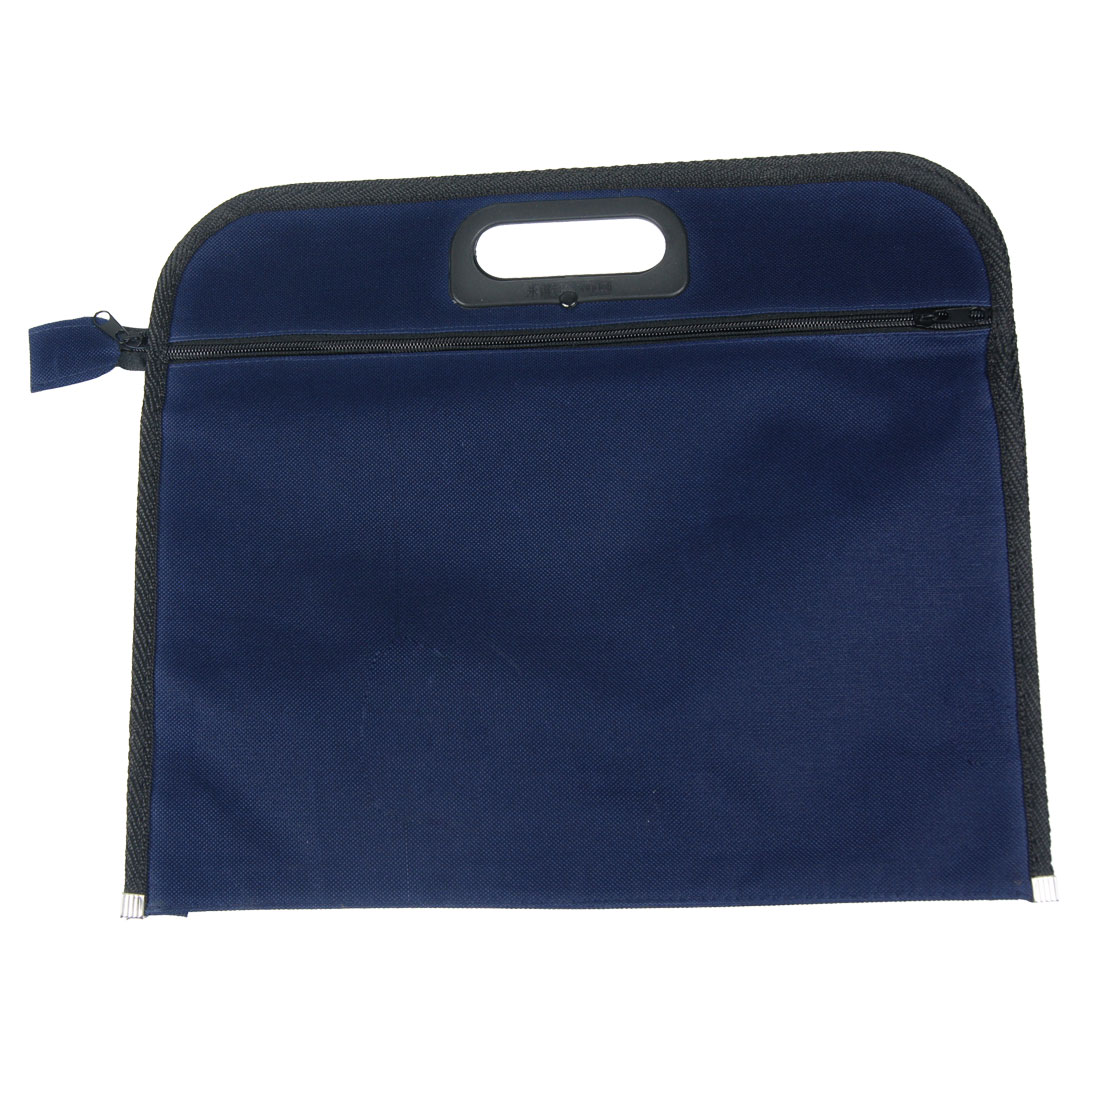 B4 Two Compartments Zipper Closure Plastic Handle Blue Nylon File Folder Bag